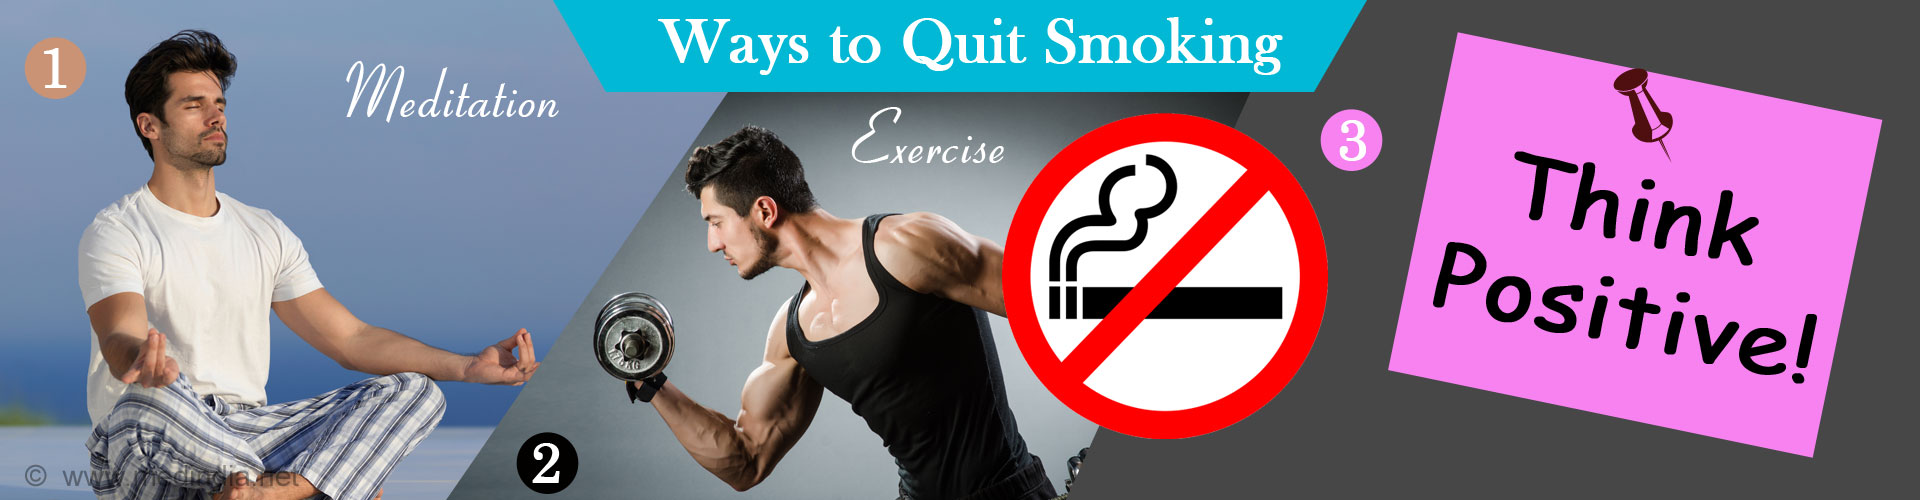 Natural Remedies to Quit Smoking